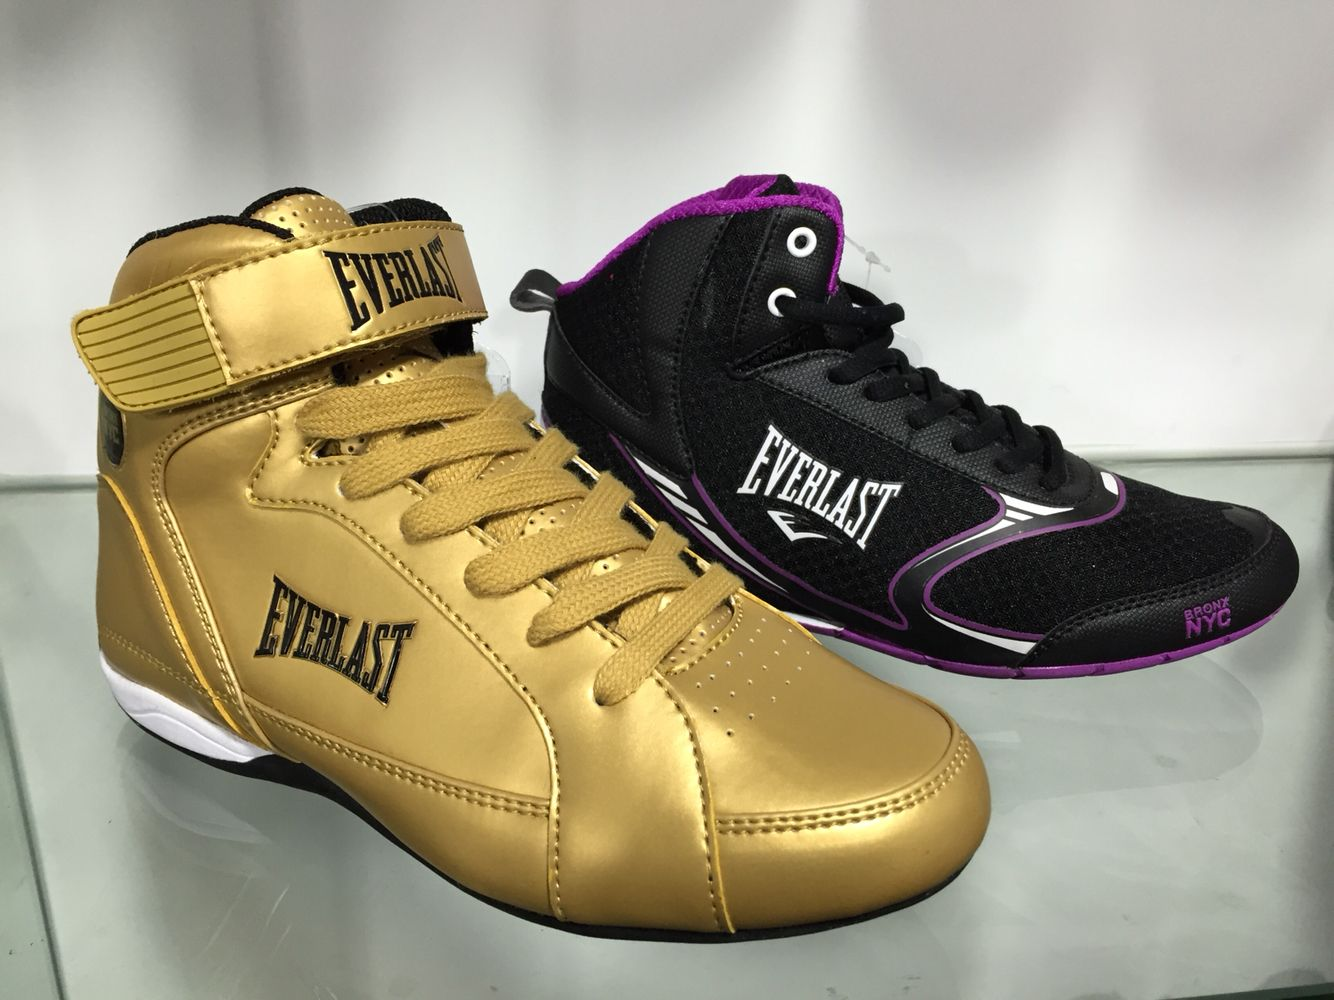 Everlast Boxing Shoes! Design by Oficinaviva